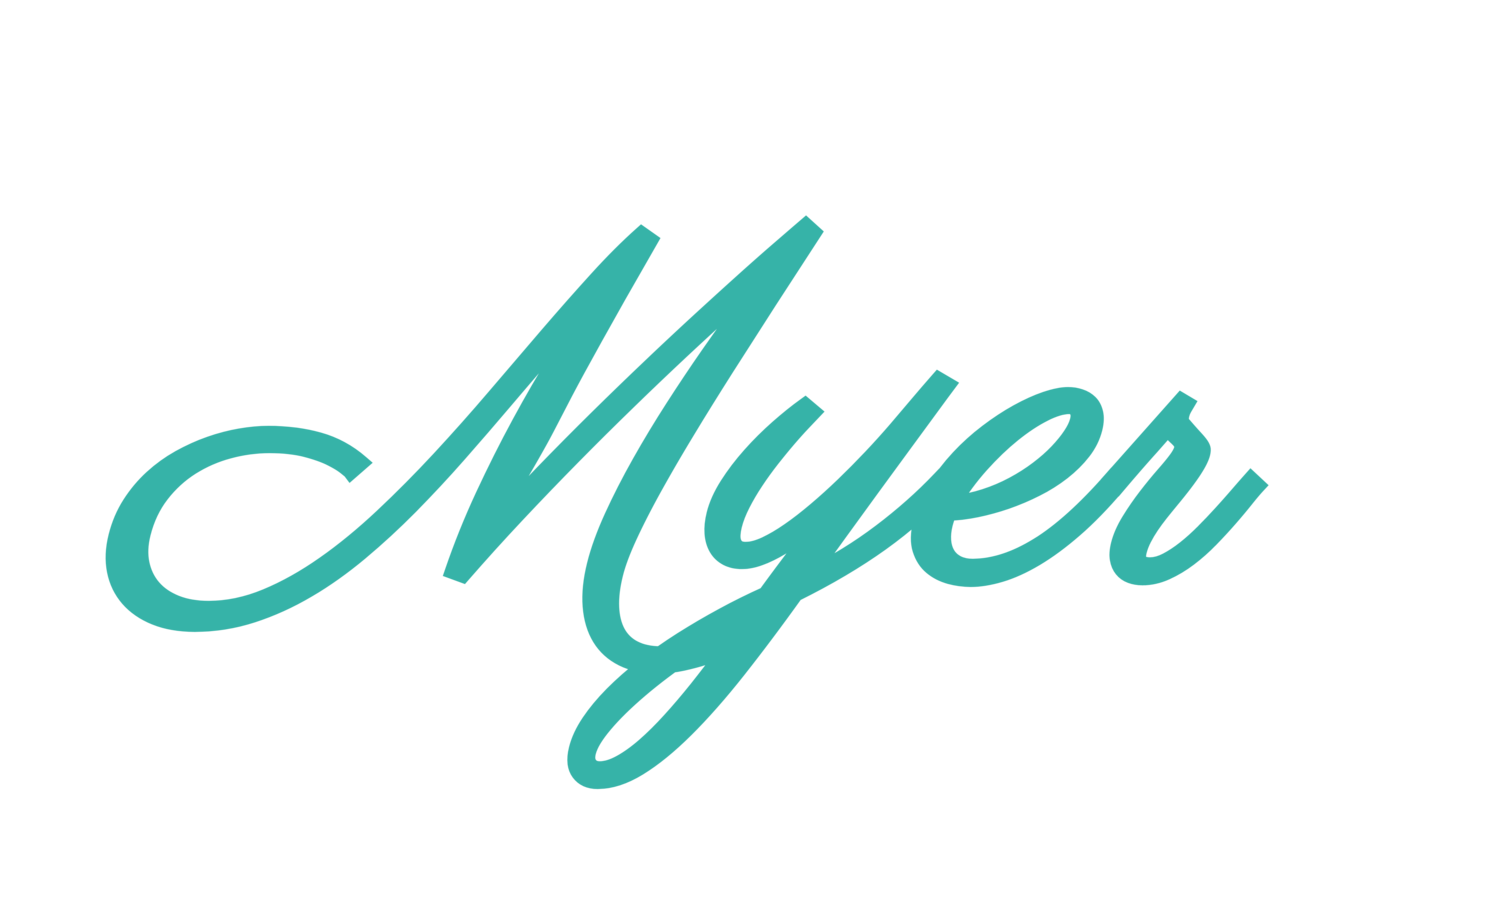 Myer Resumes Professional Resume Writers Writing Services